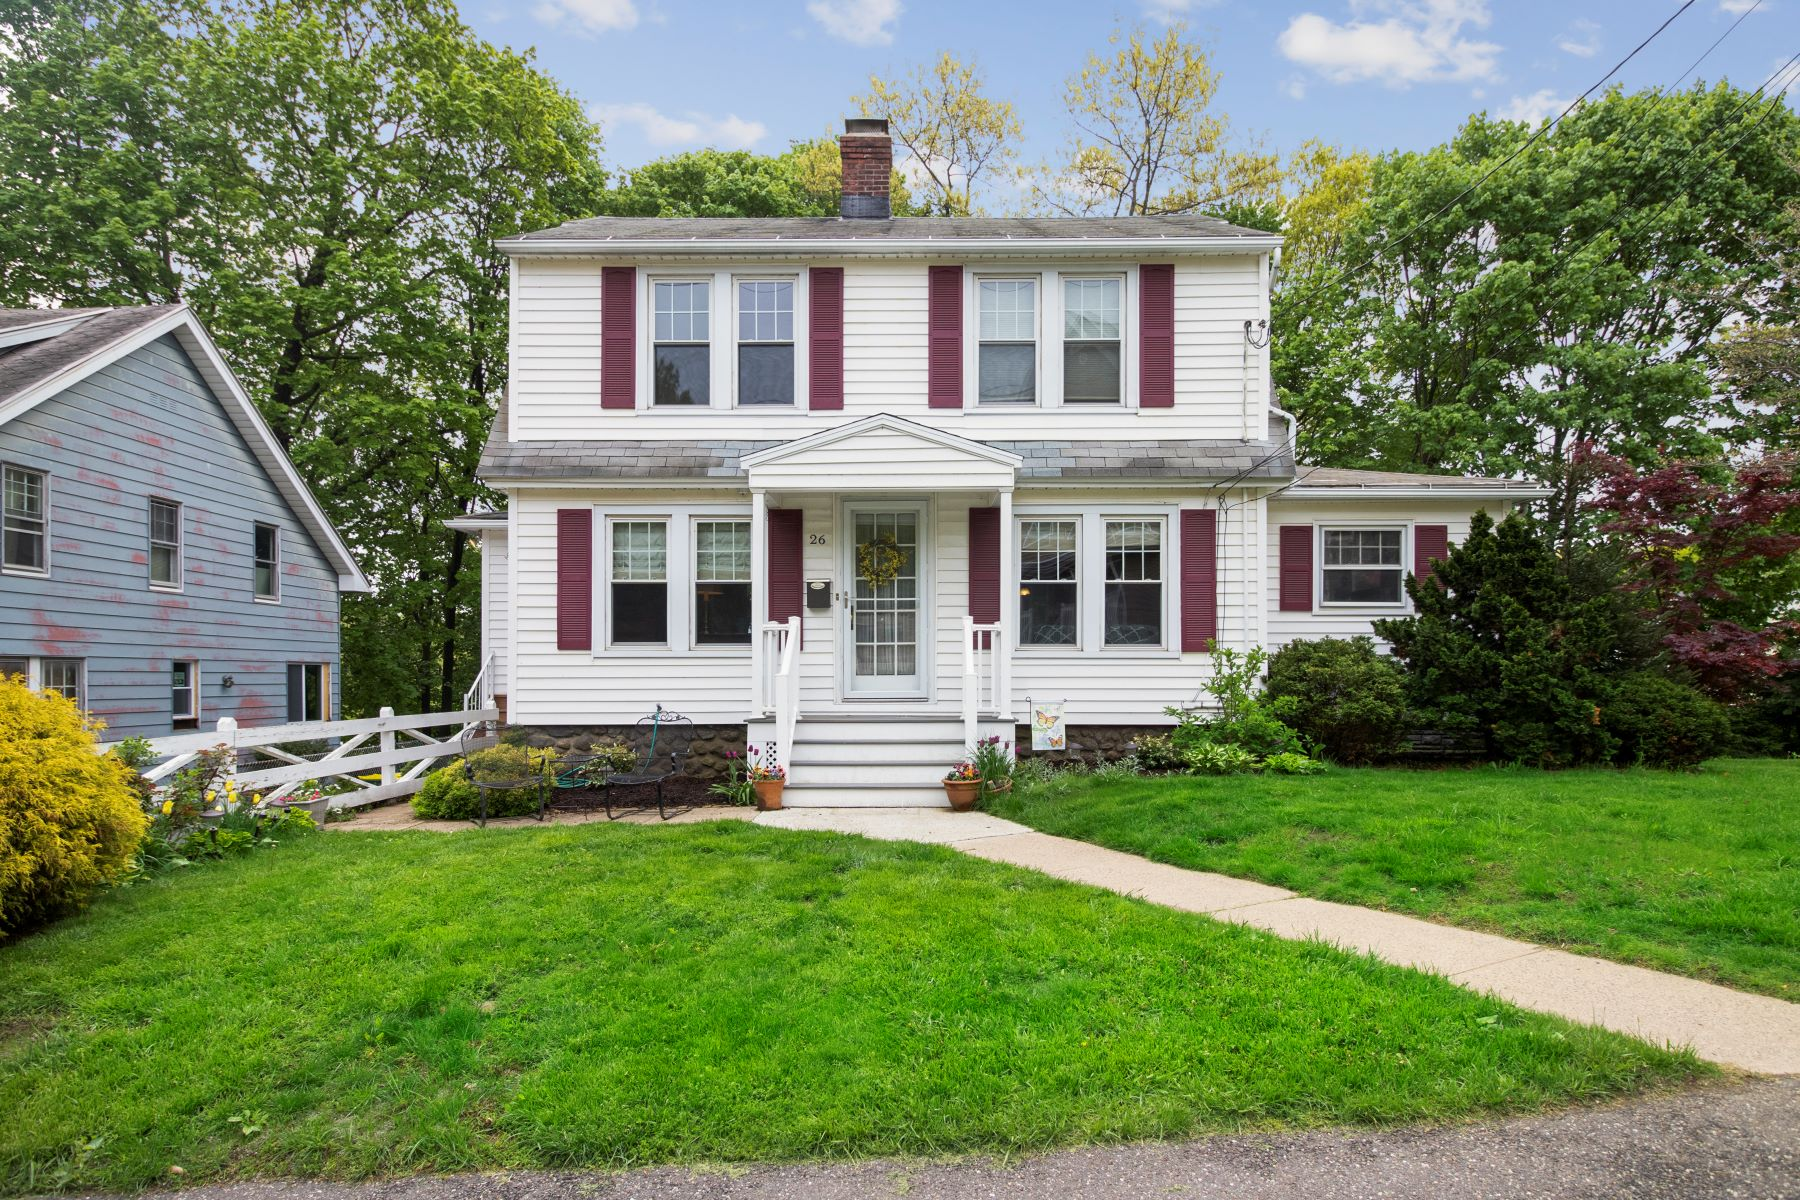 single family homes for Sale at Just Unpack and Move Right In 26 Sudbury St, Waterbury, Connecticut 06708 United States